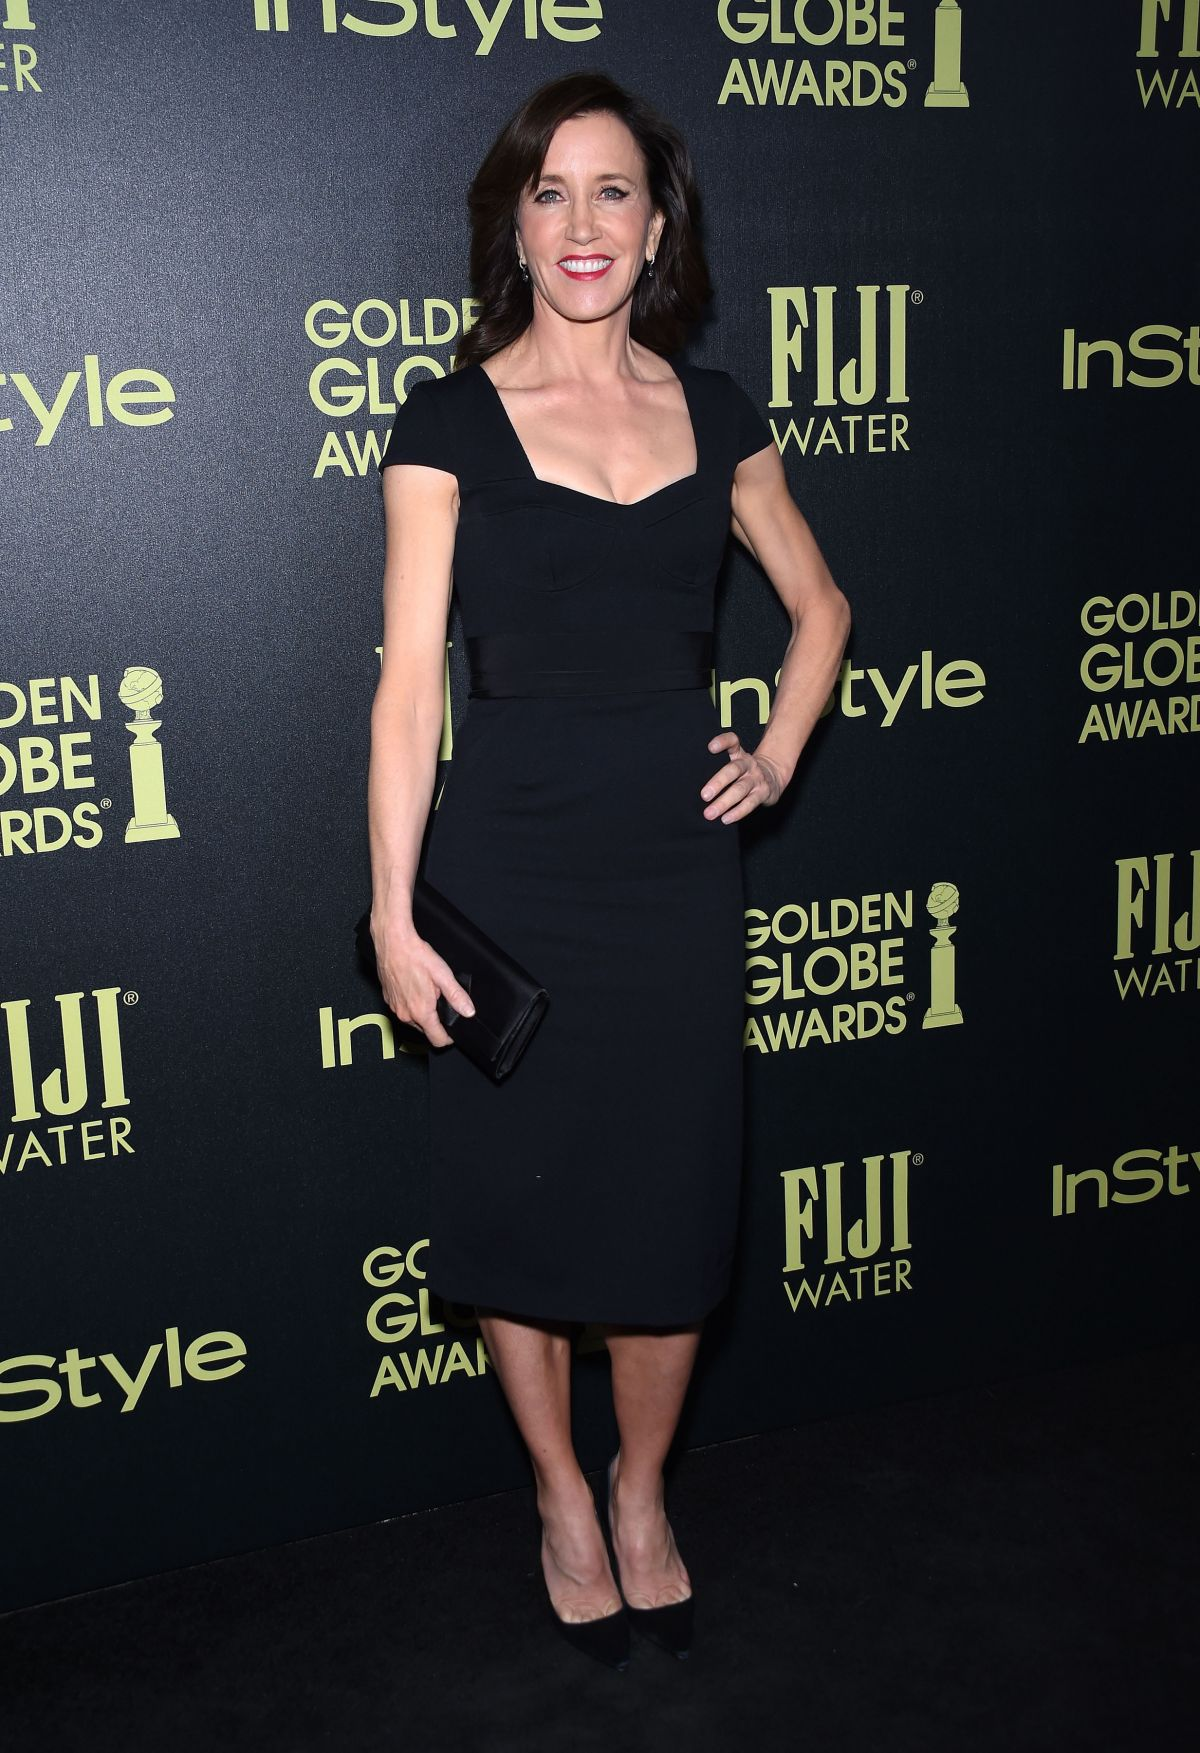 FELICITY HUFFMAN at hfpa and Instyle Celebrate 2016 Golden Globe Award Season in West Hollywood 11/17/2015